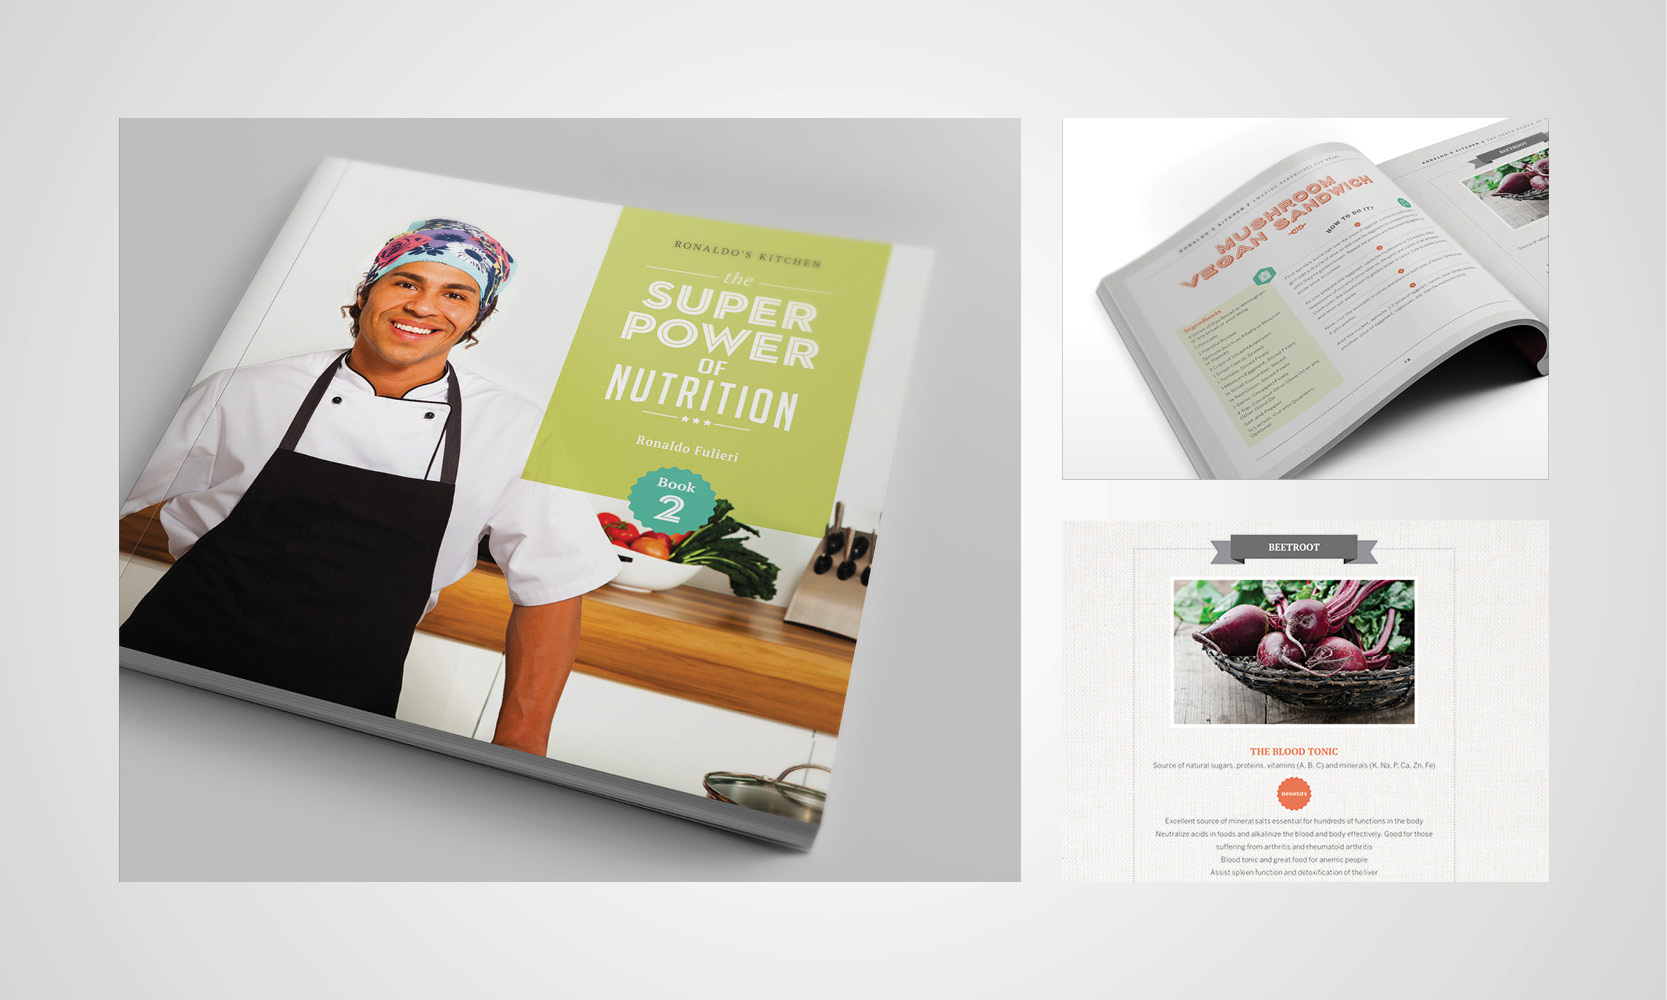 Design and printing of cookbook for Ronaldo Fulieri by Gold Coast graphic design team Copirite